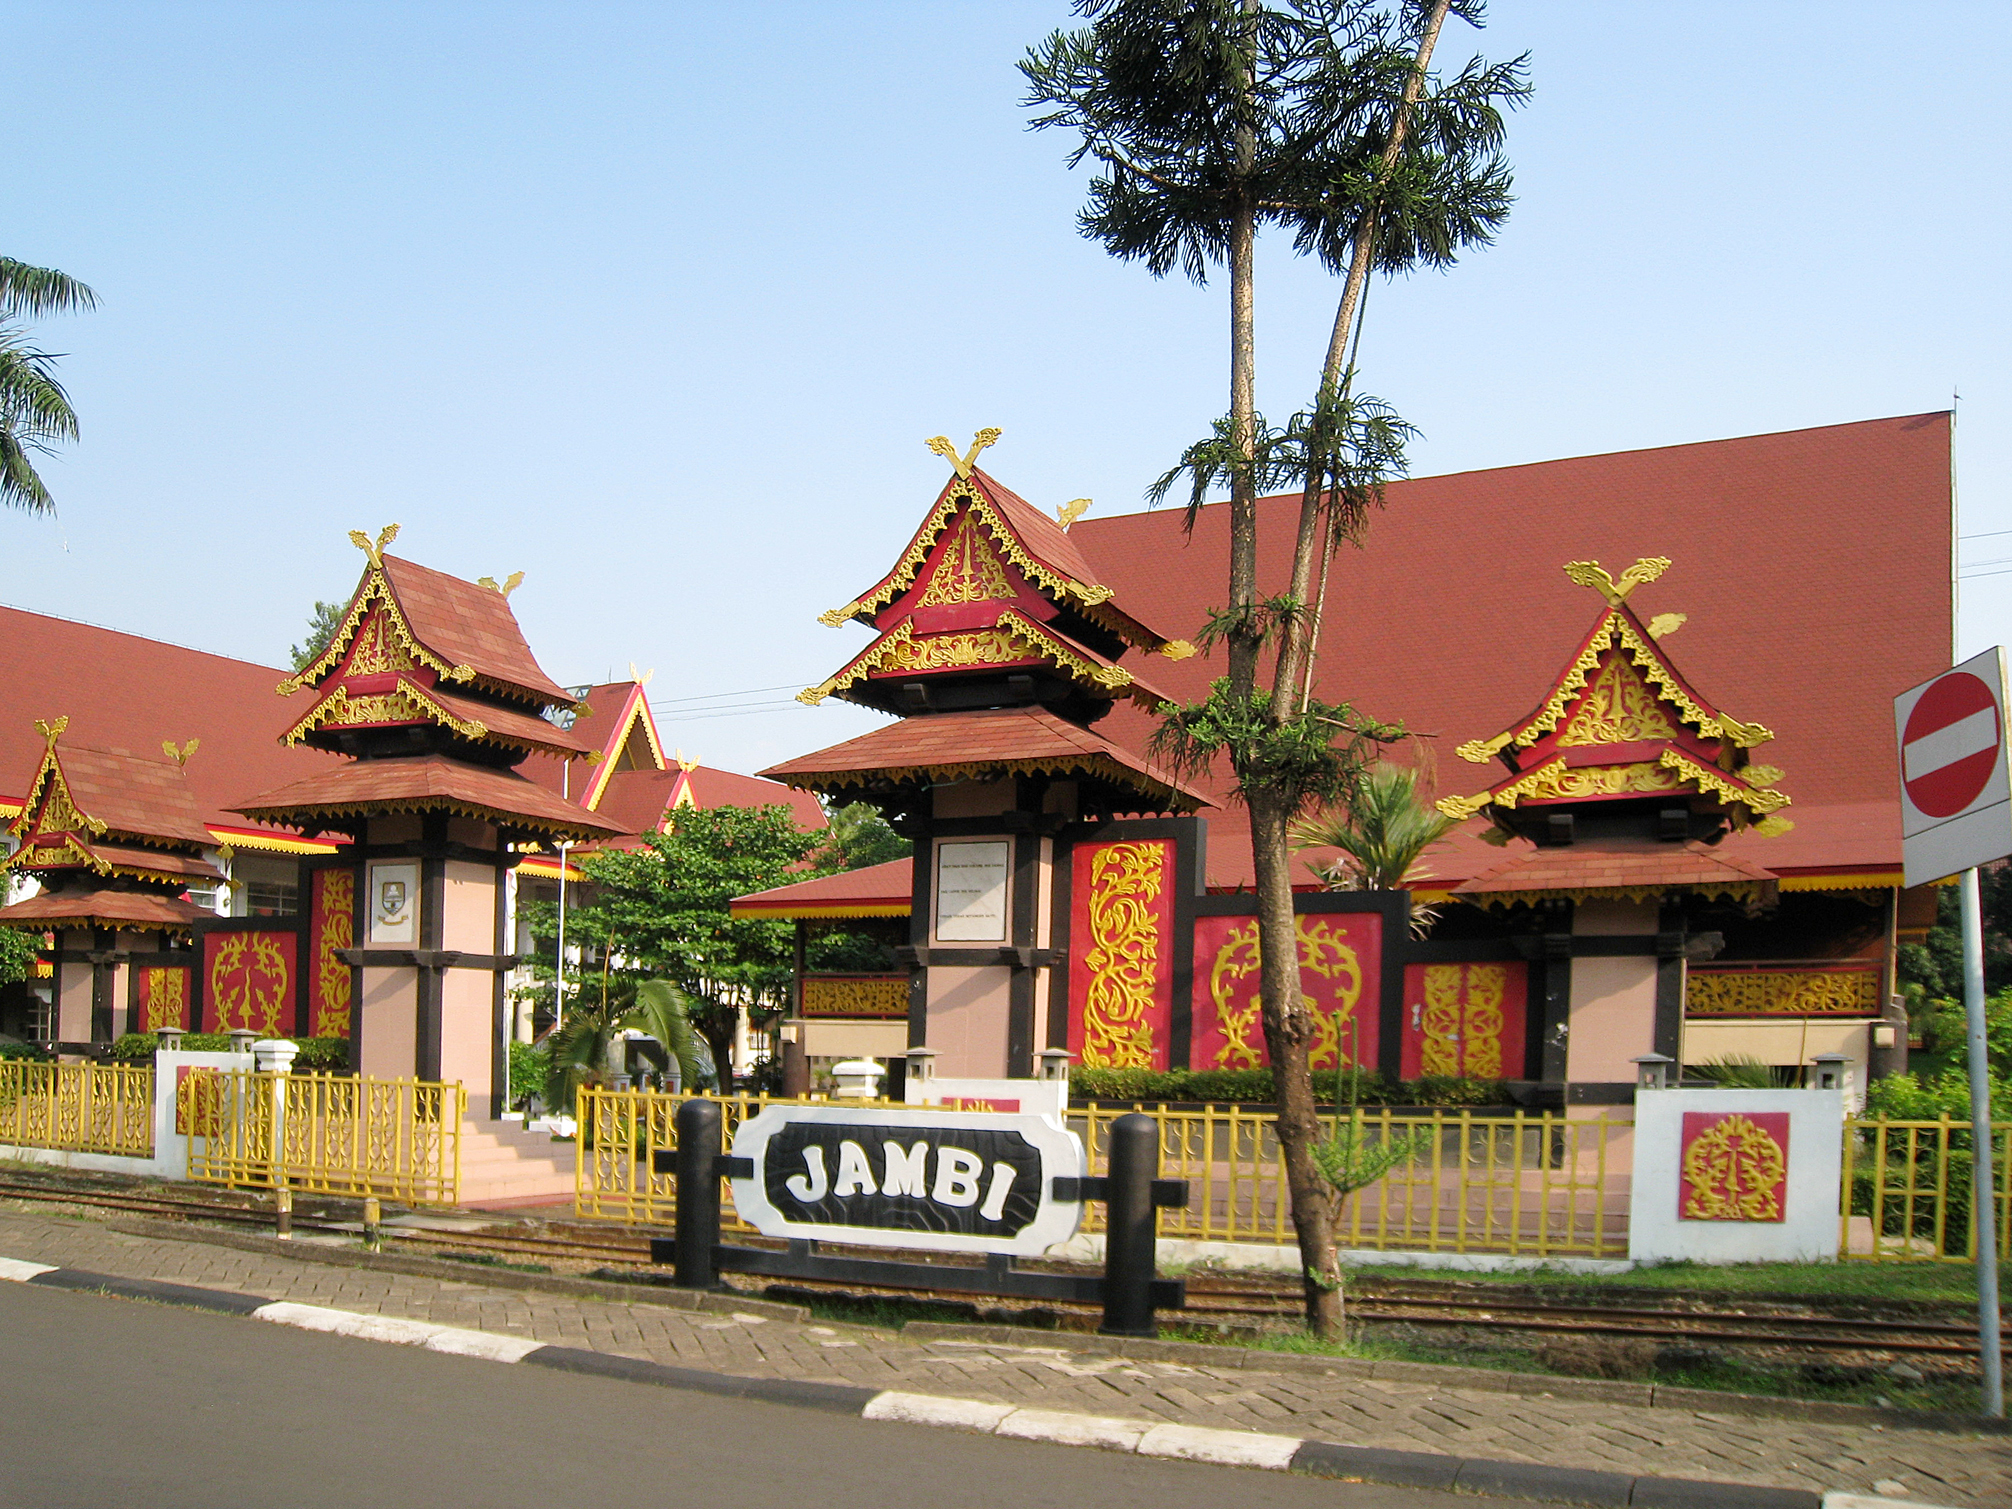 https://upload.wikimedia.org/wikipedia/commons/0/05/TMII_Jambi_Pavilion.JPG